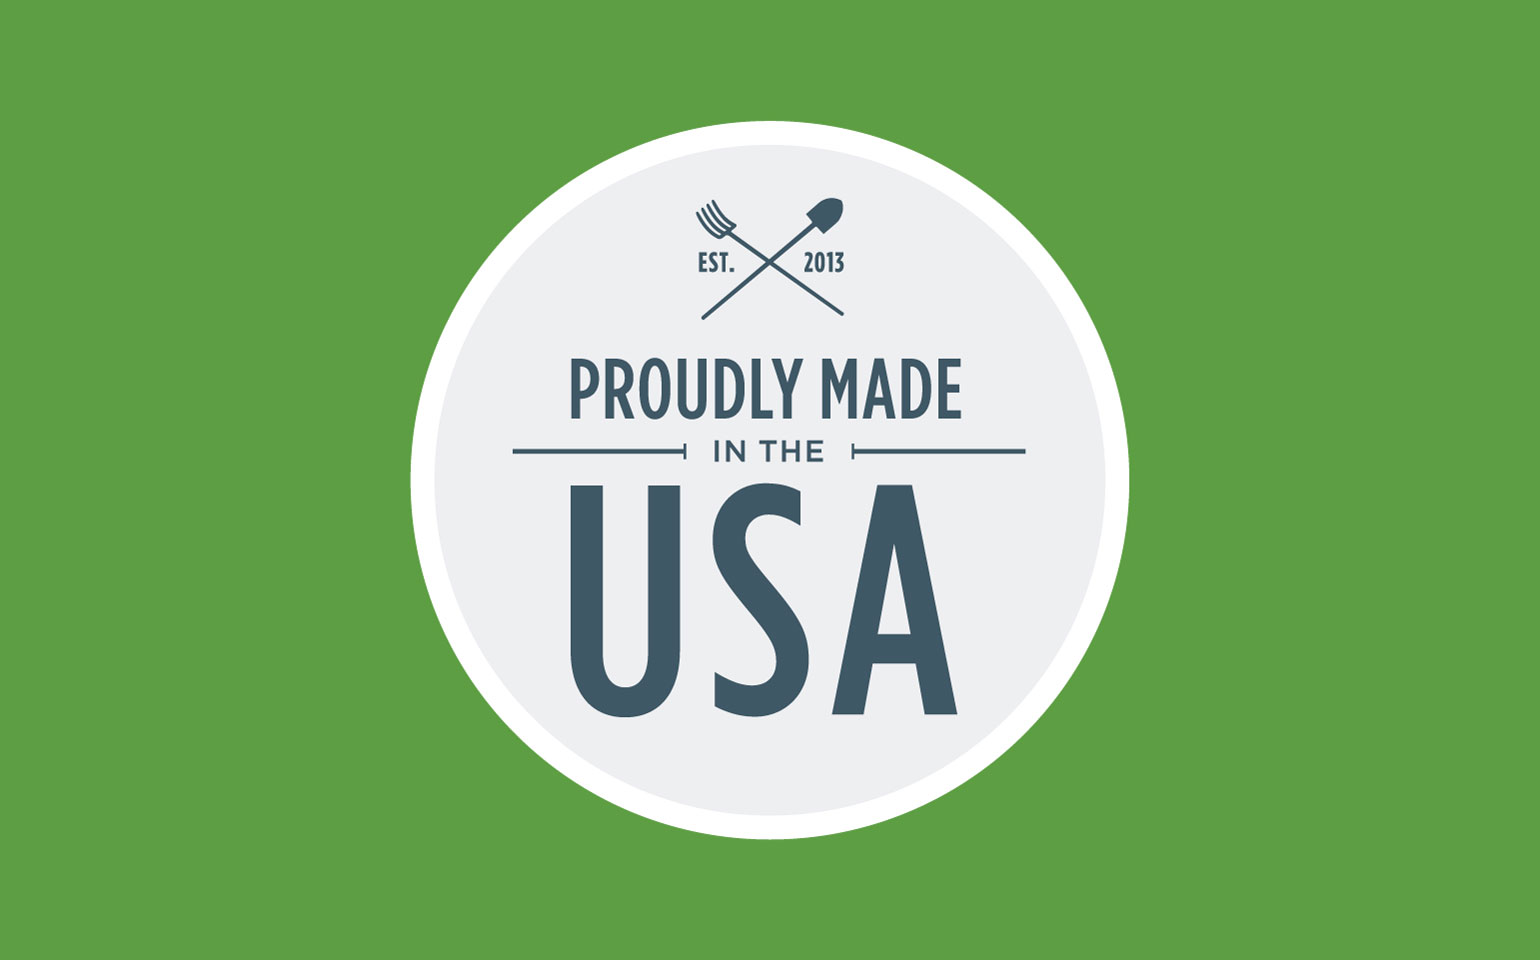 Proudly Made in the USA icon